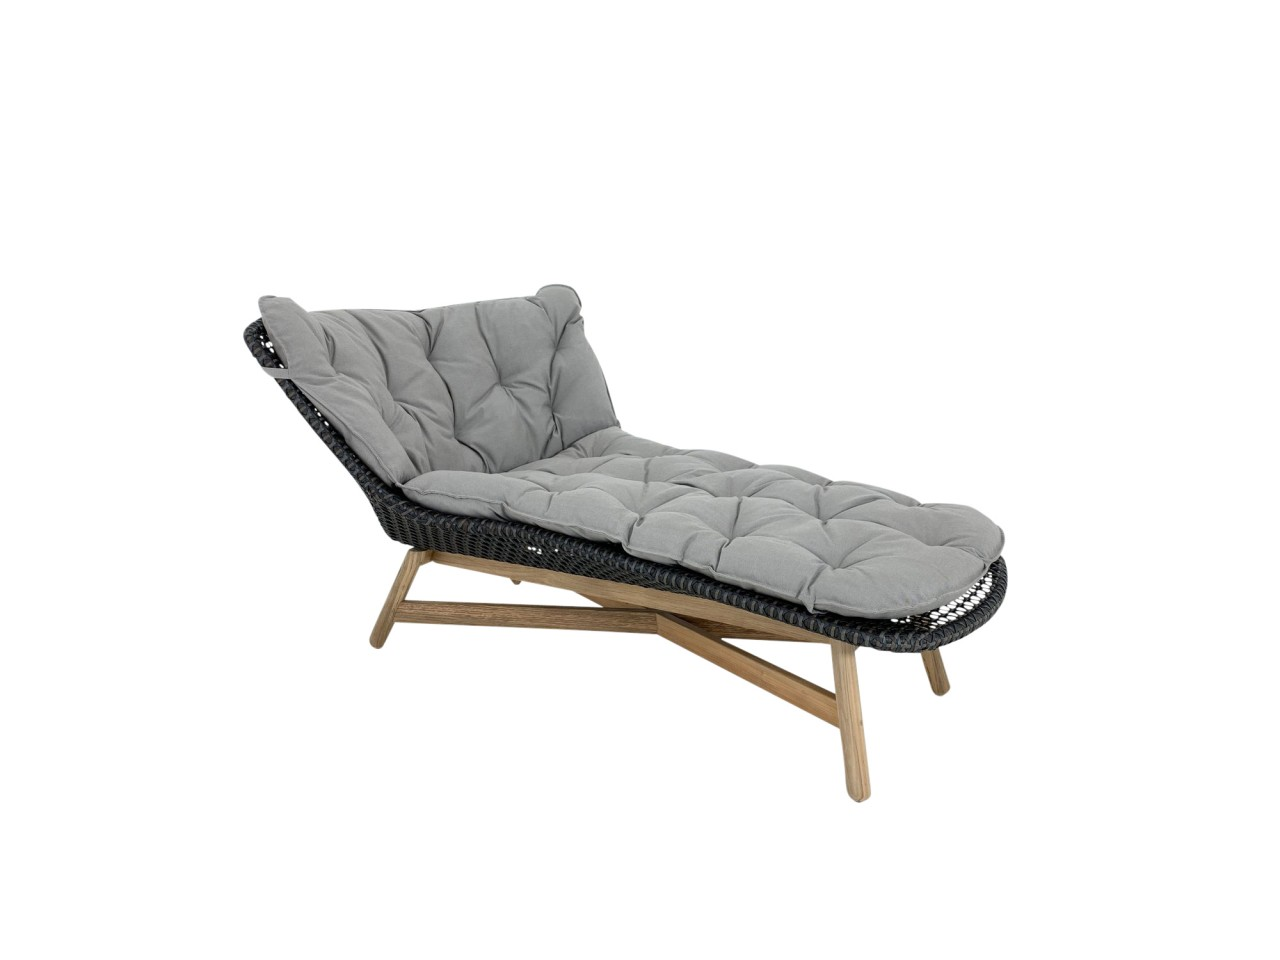 Dedon MBRACE Daybed Liege in der Farbe arabica mit Polsterauflage in cool taupe